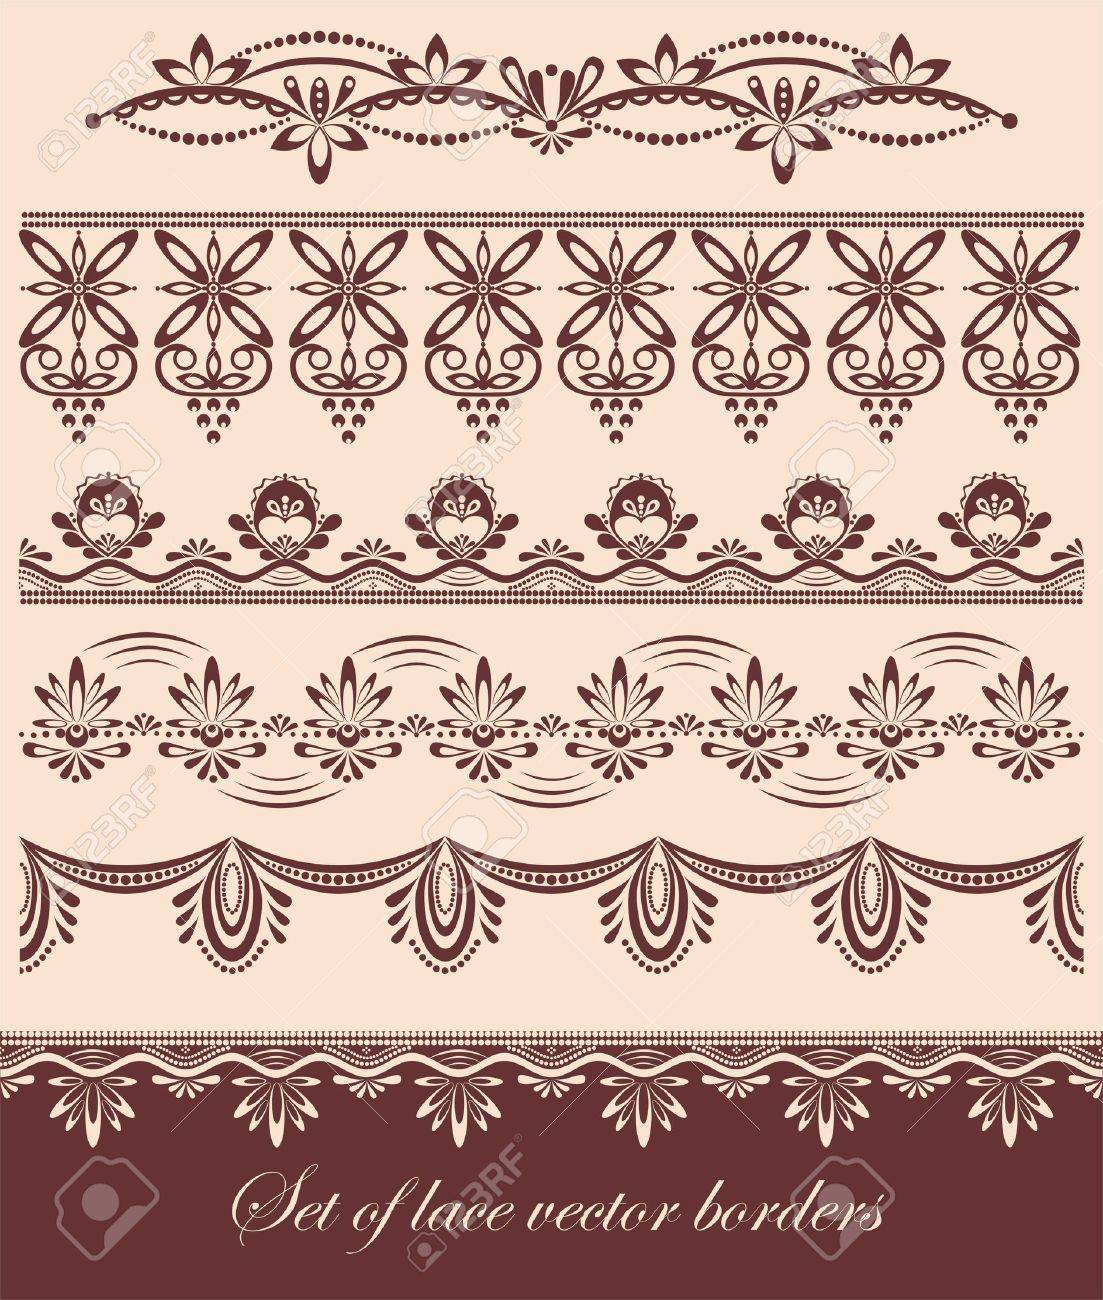 Set of vintage scalloped vector lace borders Stock Vector - 12819661